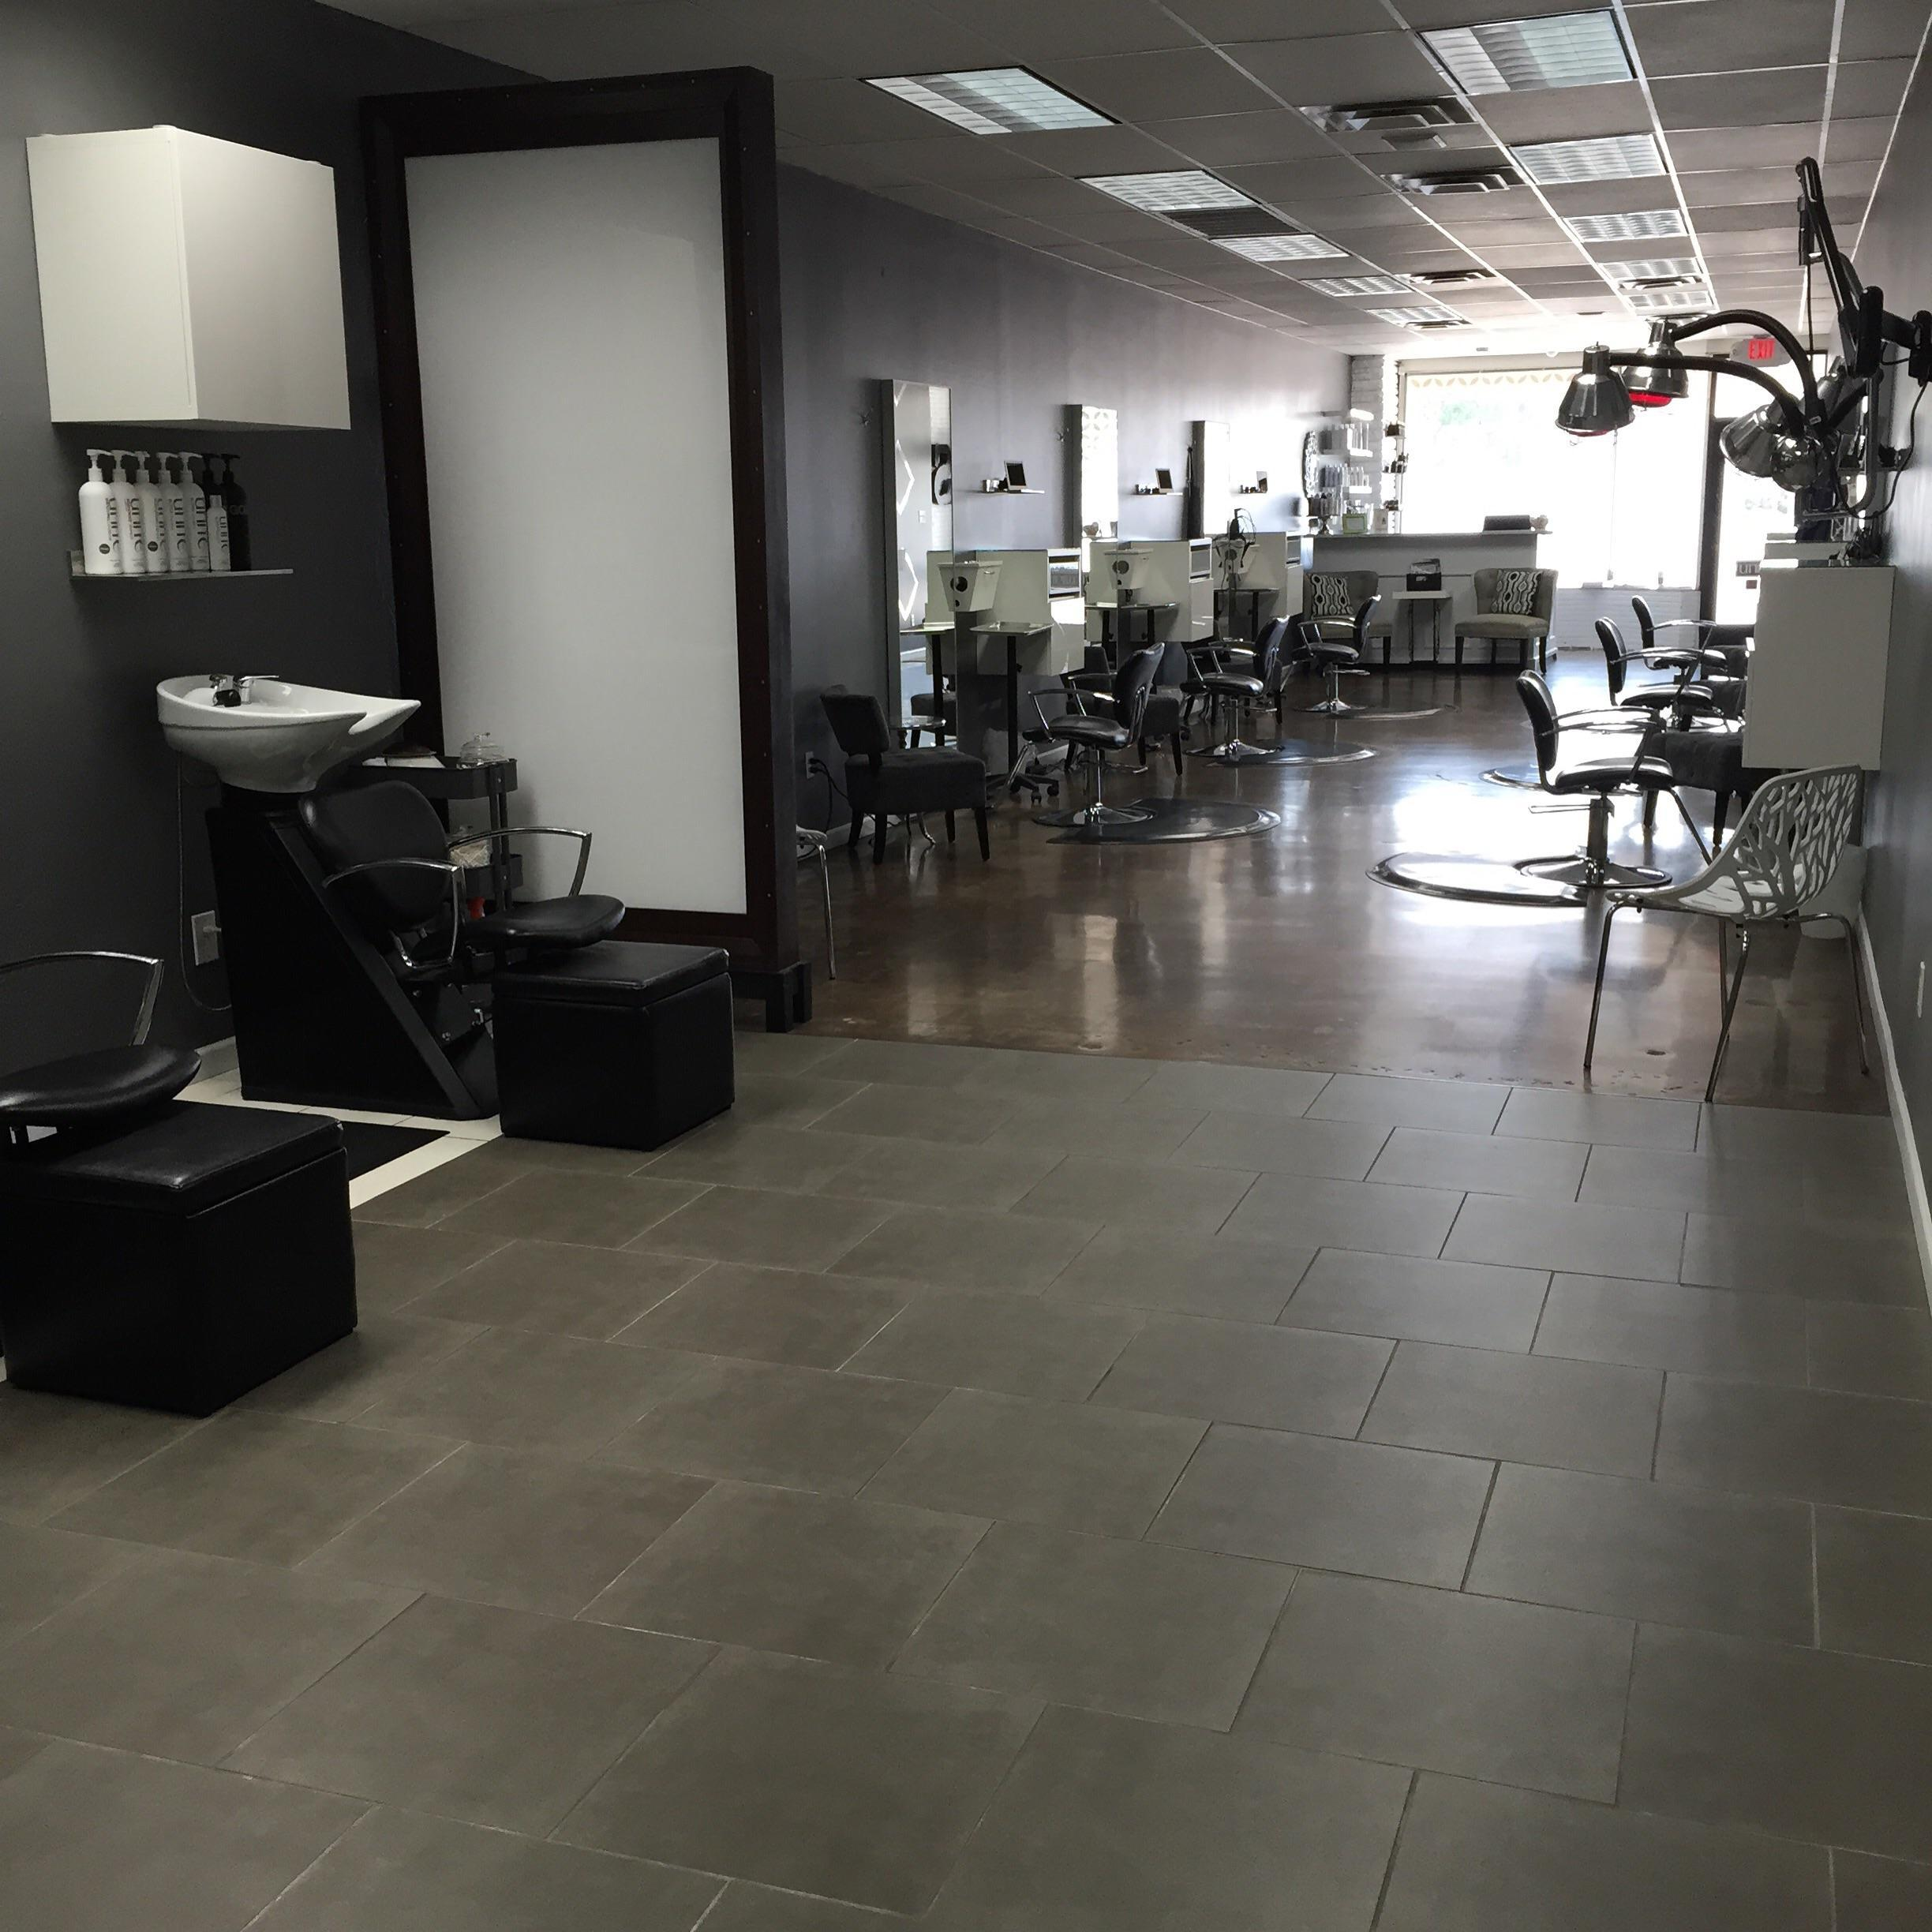 salon 9309 in oklahoma city ok 73120 For9309 Salon Oklahoma City